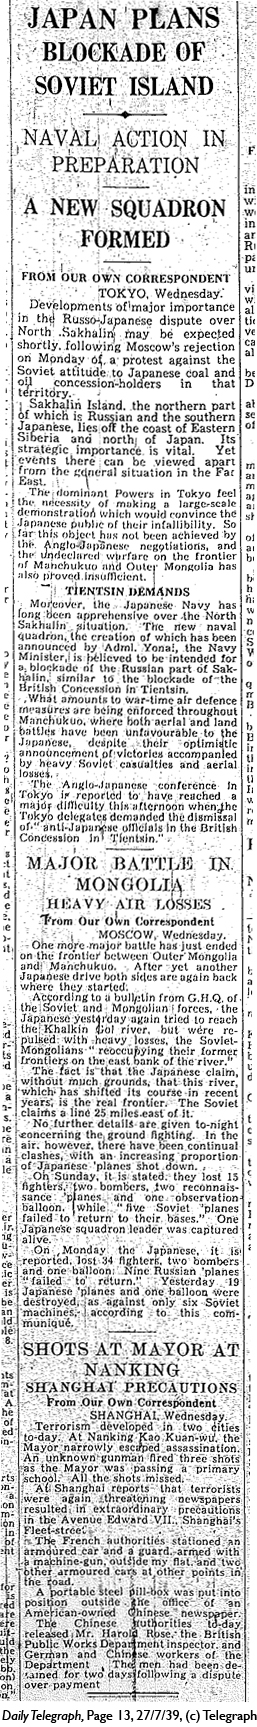 Daily Telegraph 27-7-39 Page 13